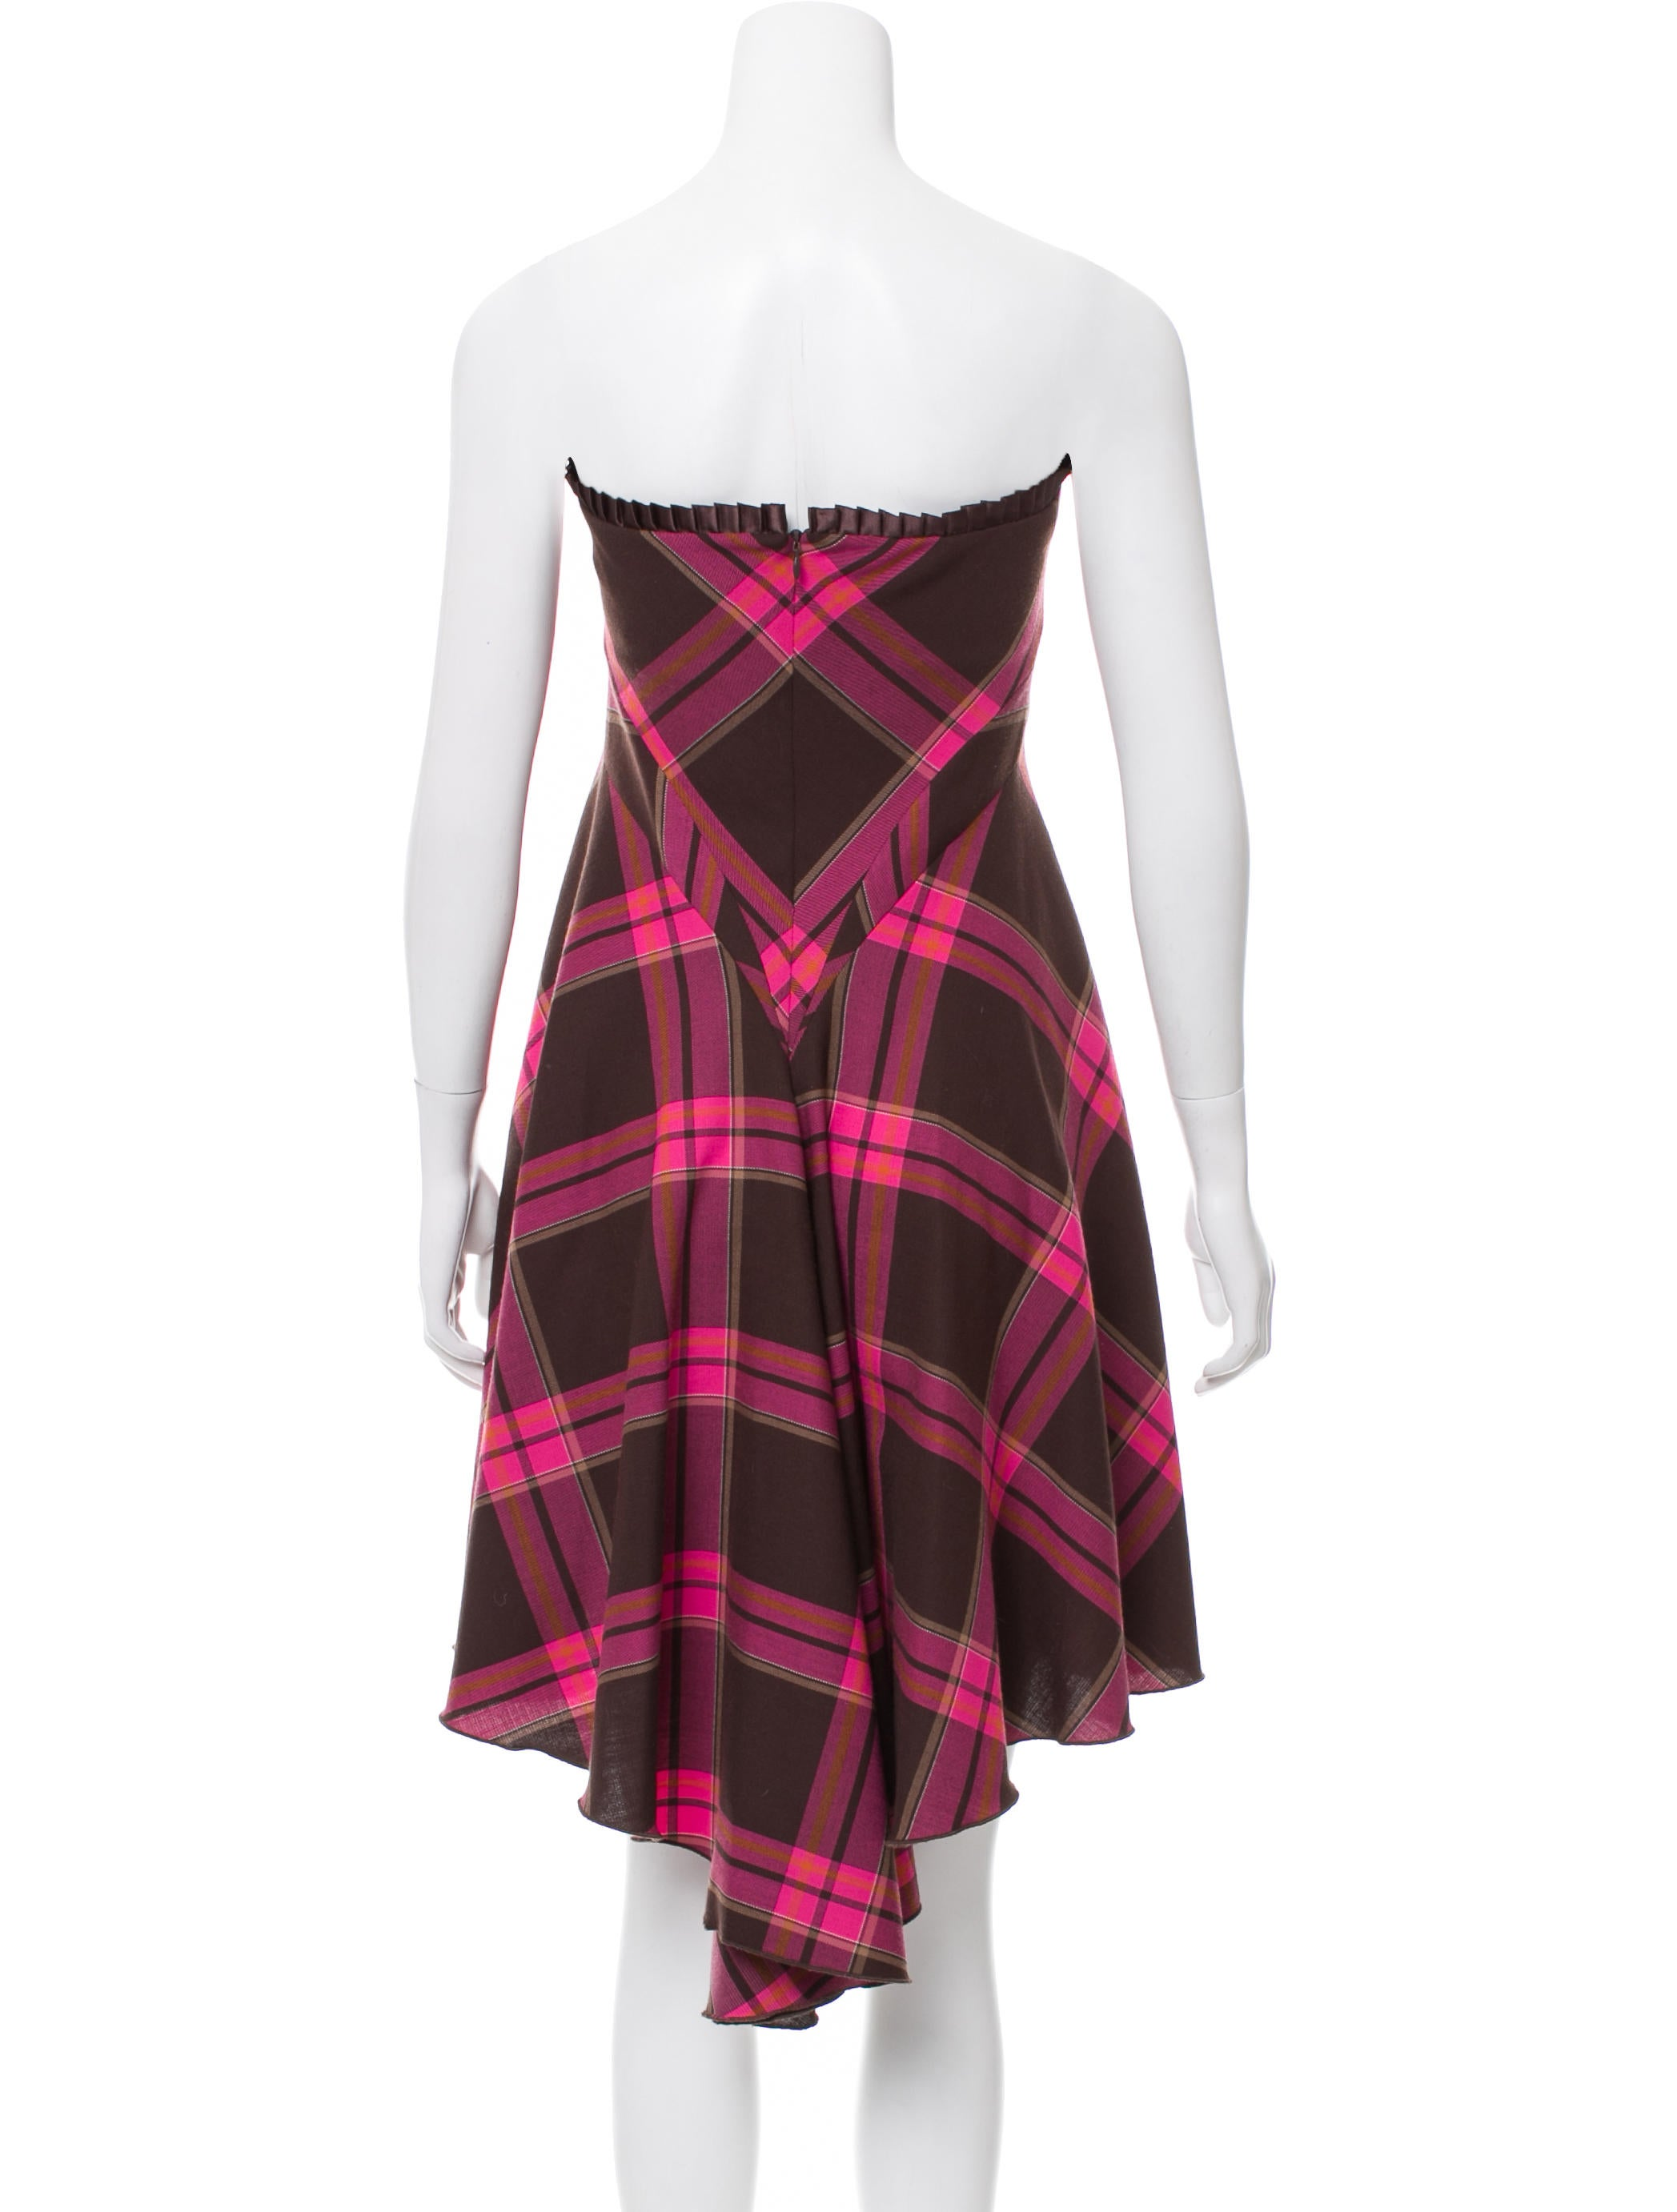 Plaid Dress. This season, pop some pattern into your wardrobe with the latest plaid dresses. Whether you're headed to the office or a night out on the town, these stylish standouts are sure to .